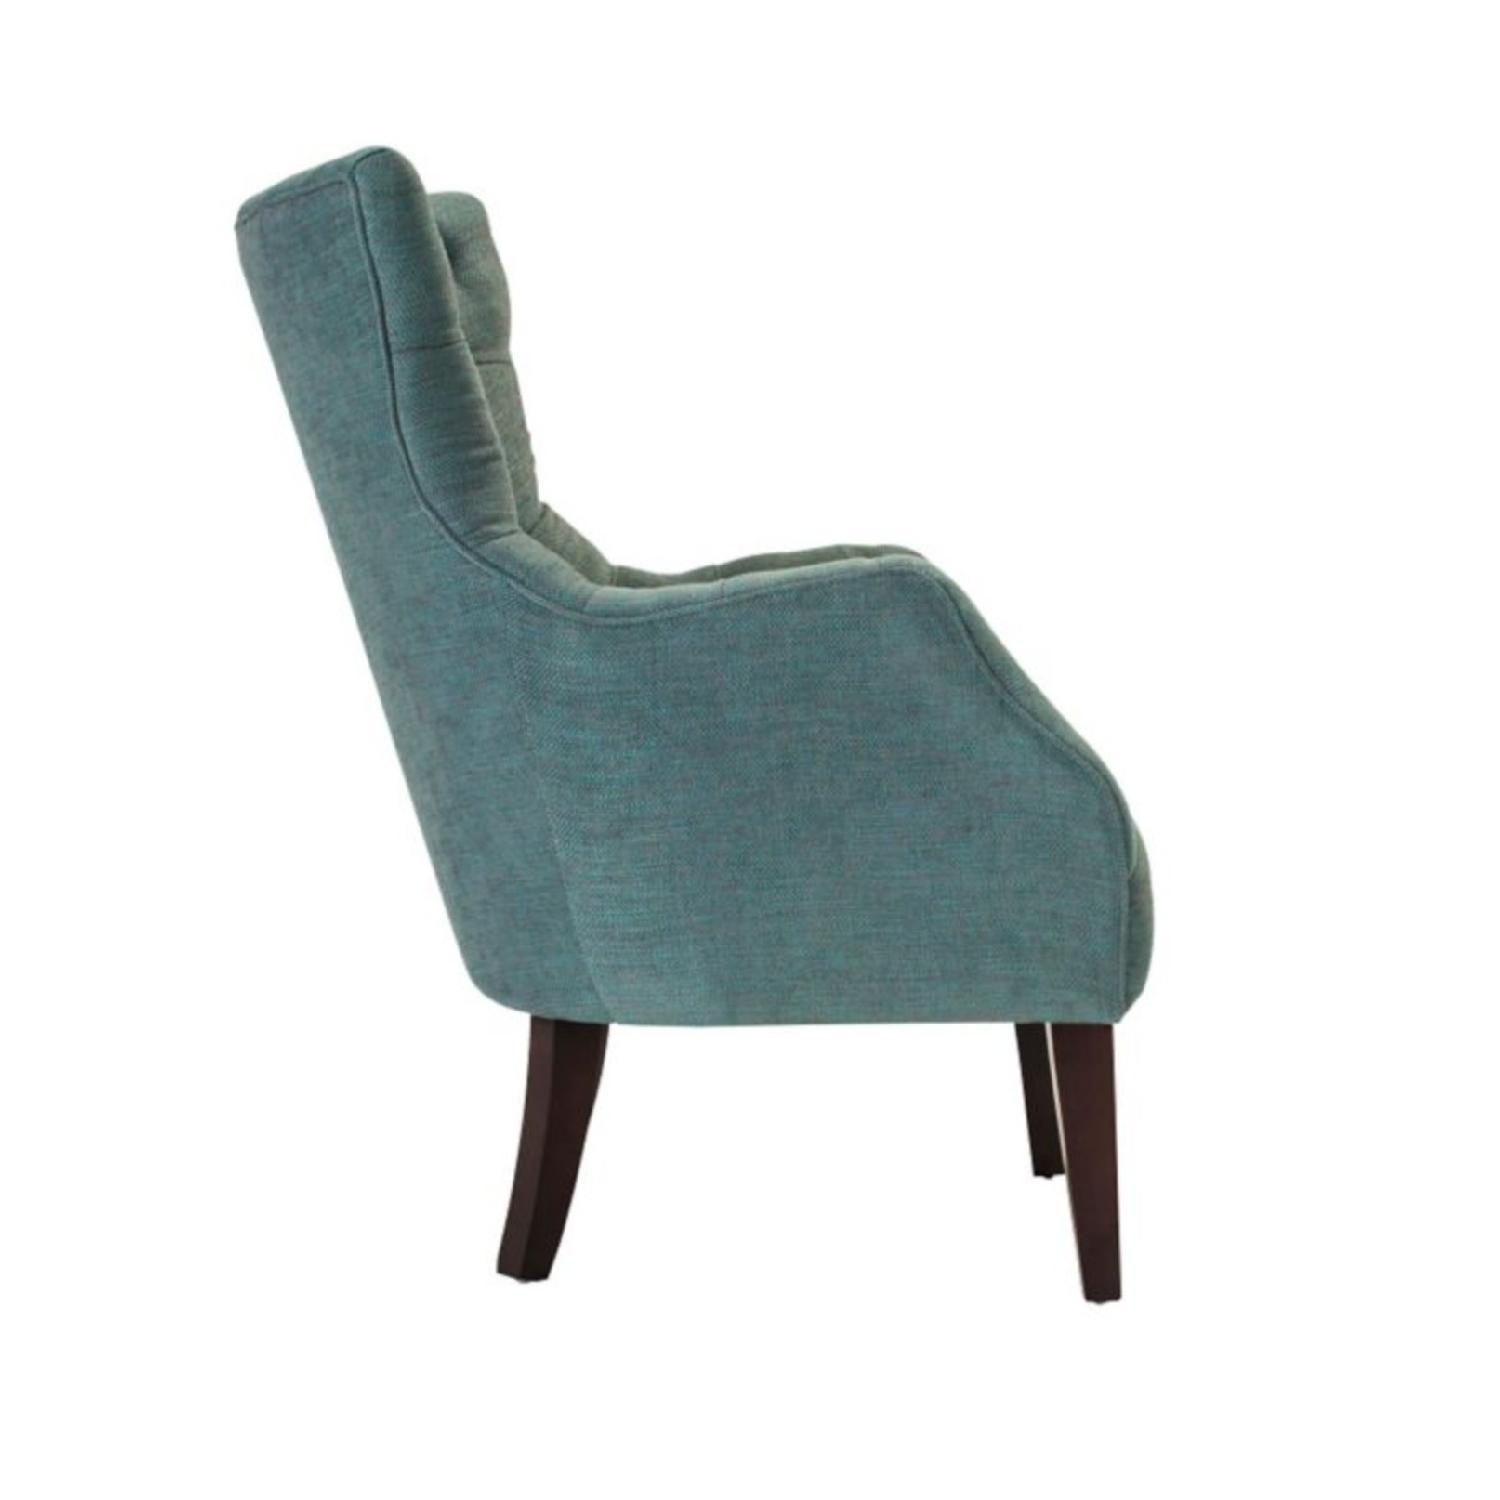 Raymour & Flanigan Angora Chenille Accent Chair-1